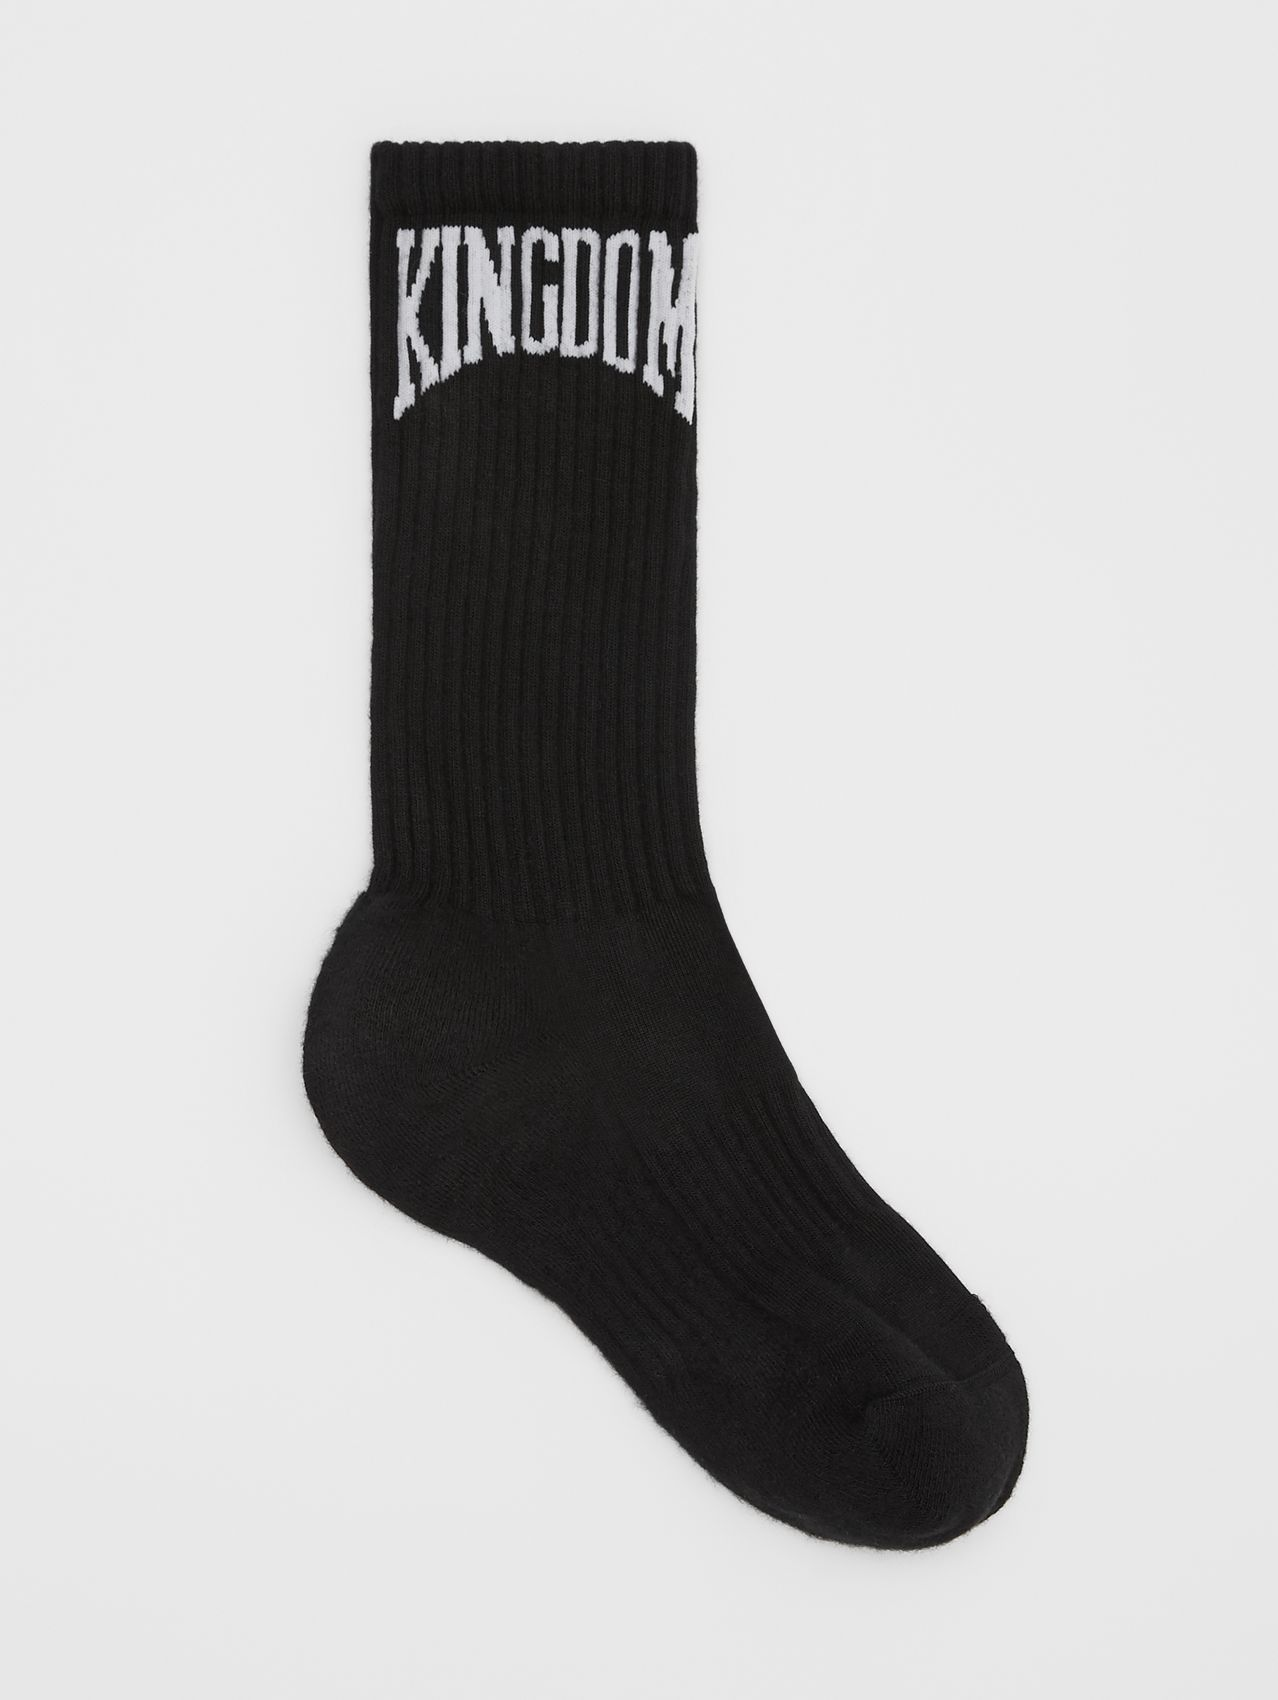 Kingdom Intarsia Cotton Blend Socks in Black